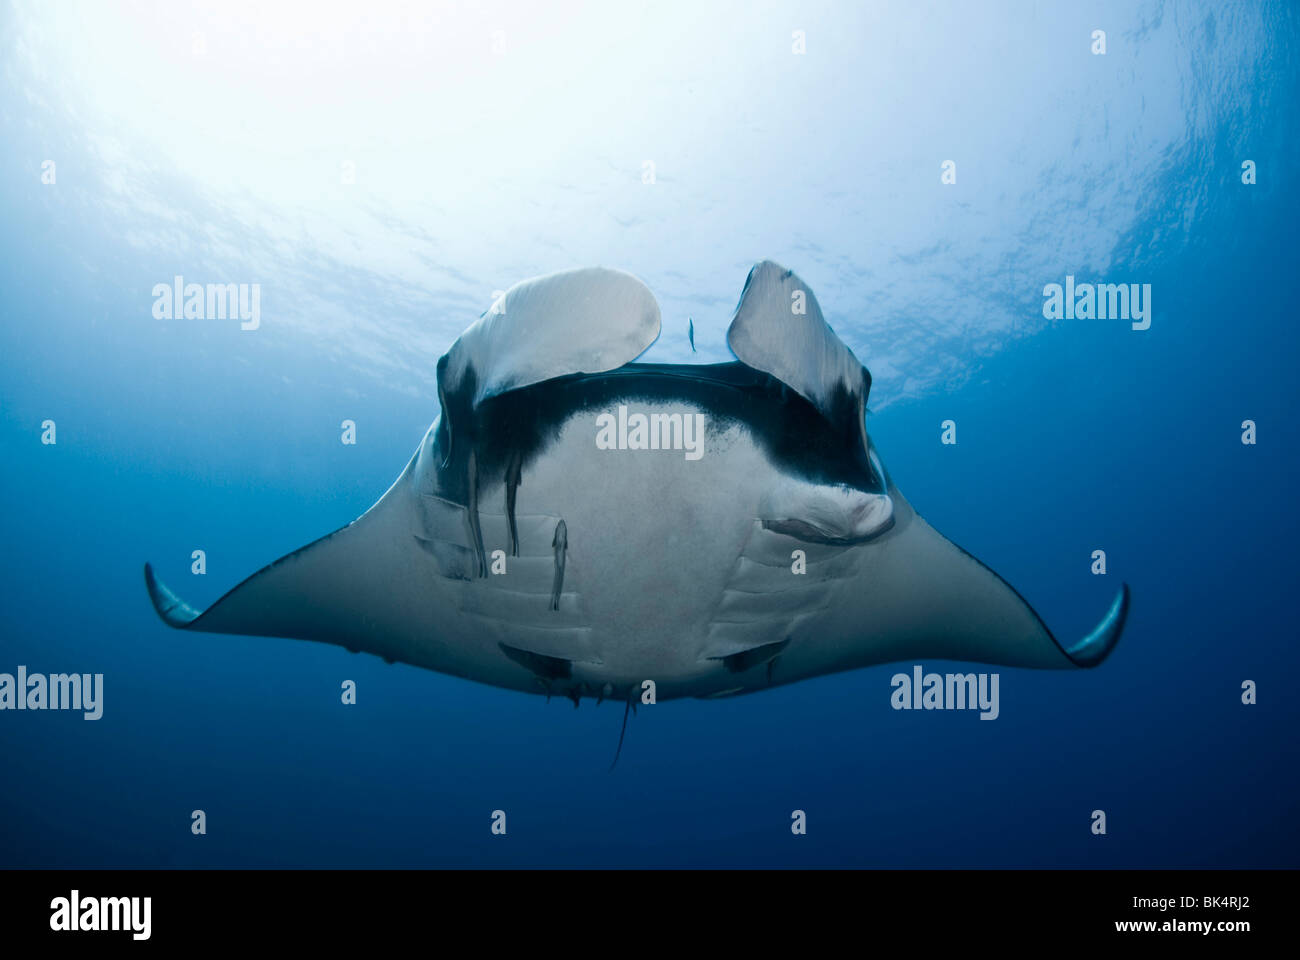 Manta ray, Mergui Archipelago, Burma, Andaman Sea, Indian Ocean - Stock Image